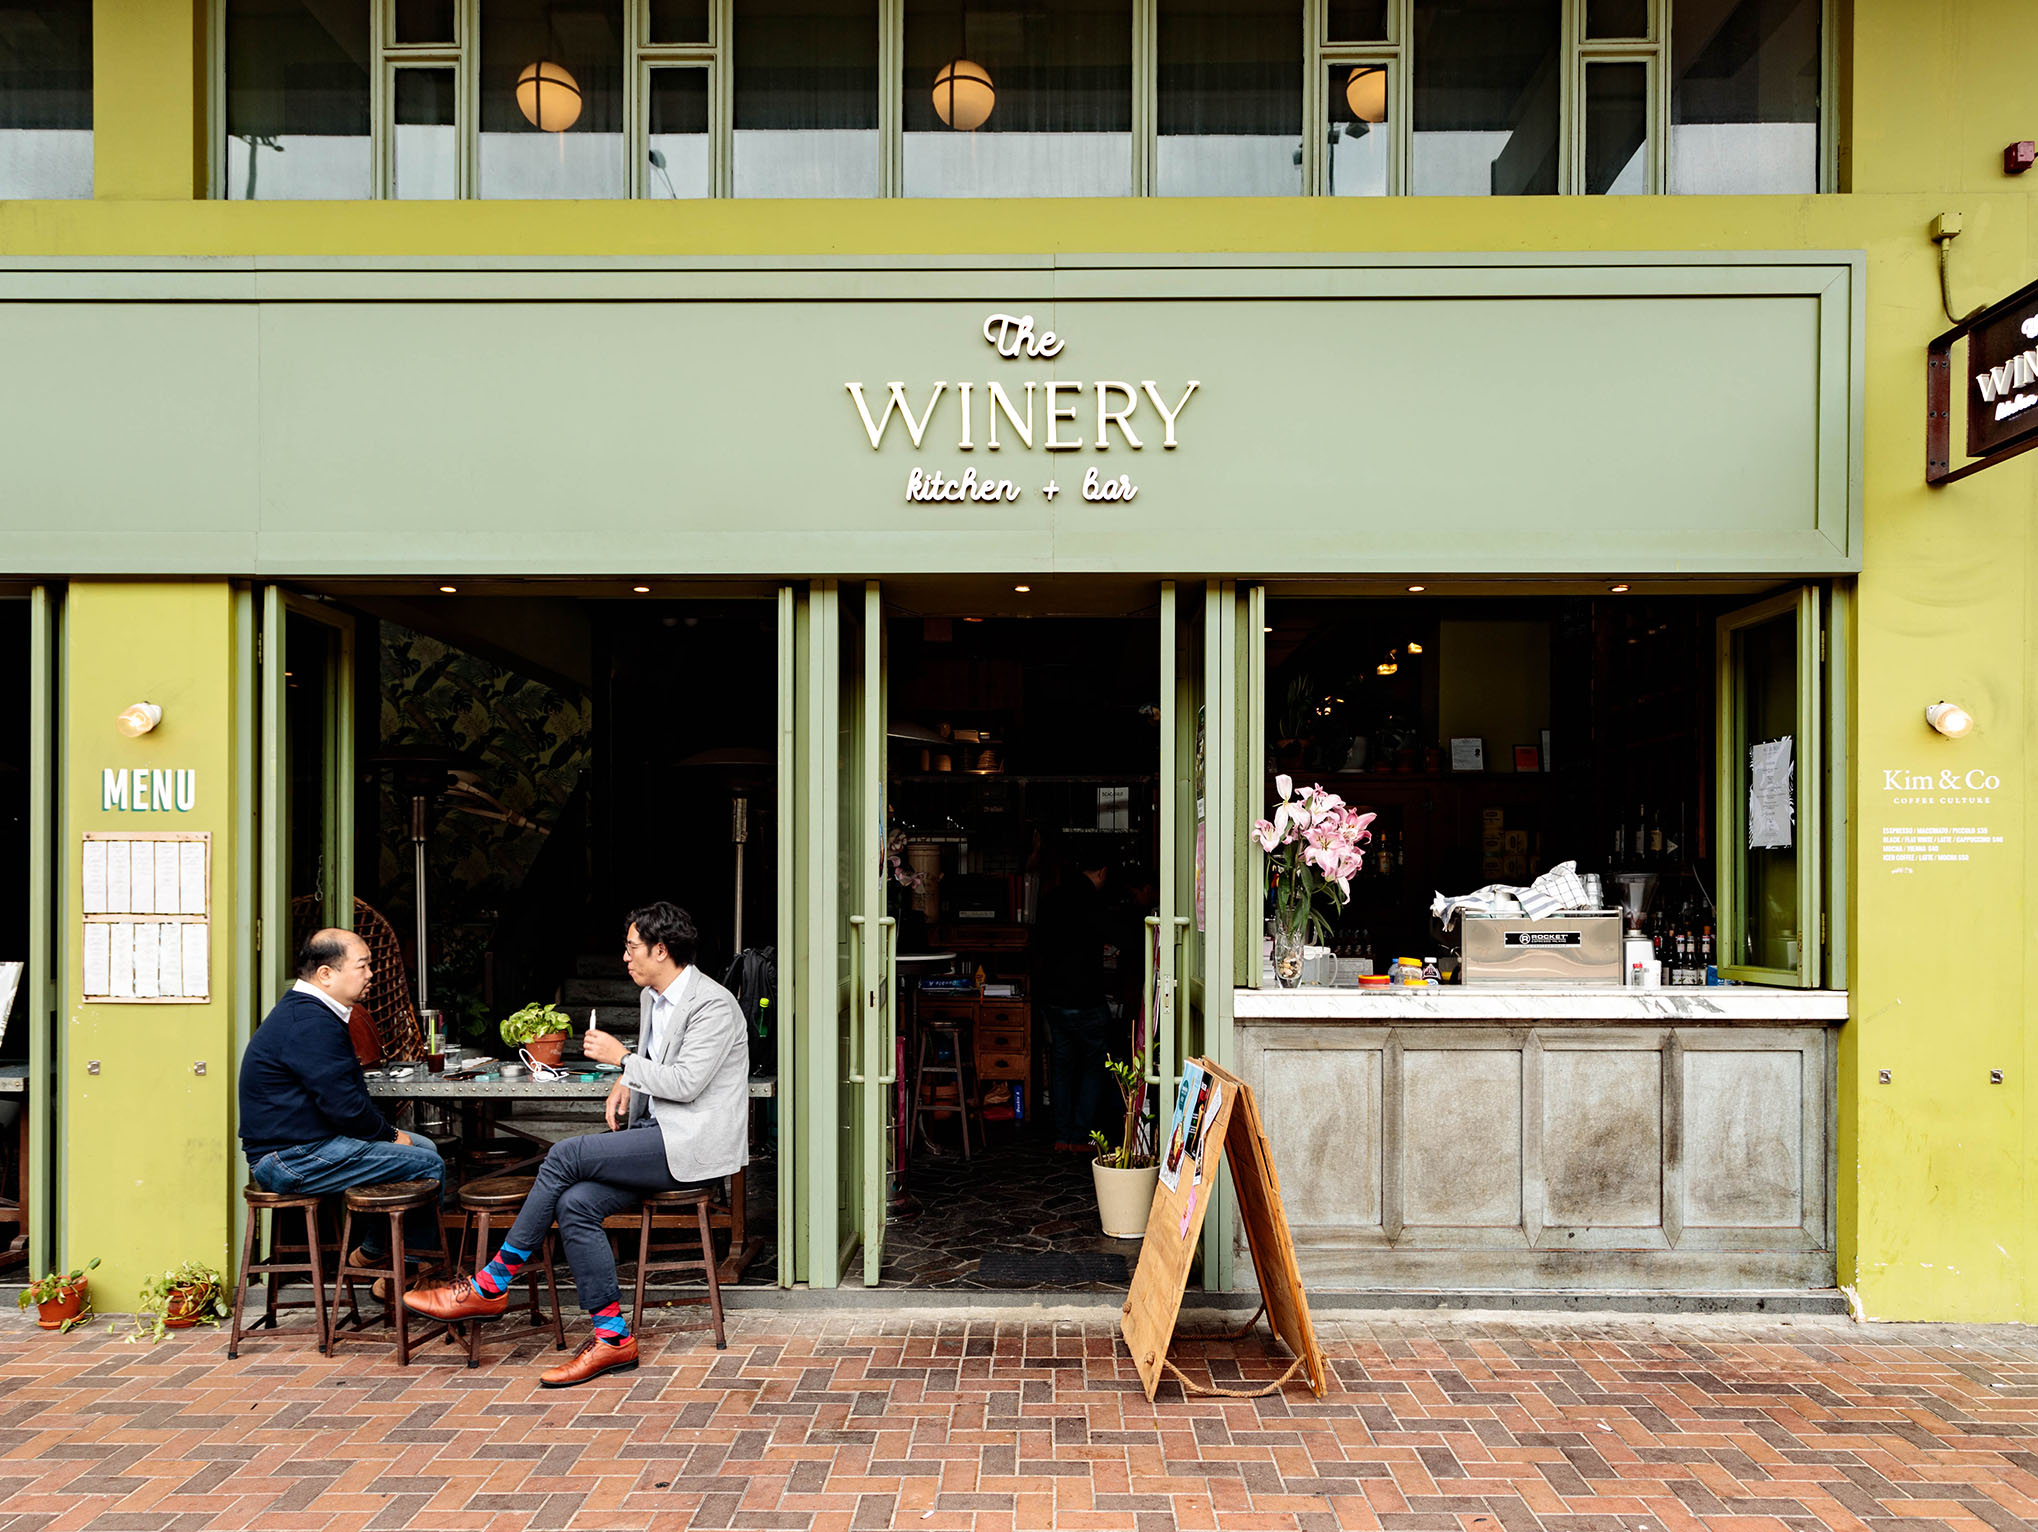 The Winery Kitchen, a cozy restaurant that provides all day dining and drinking